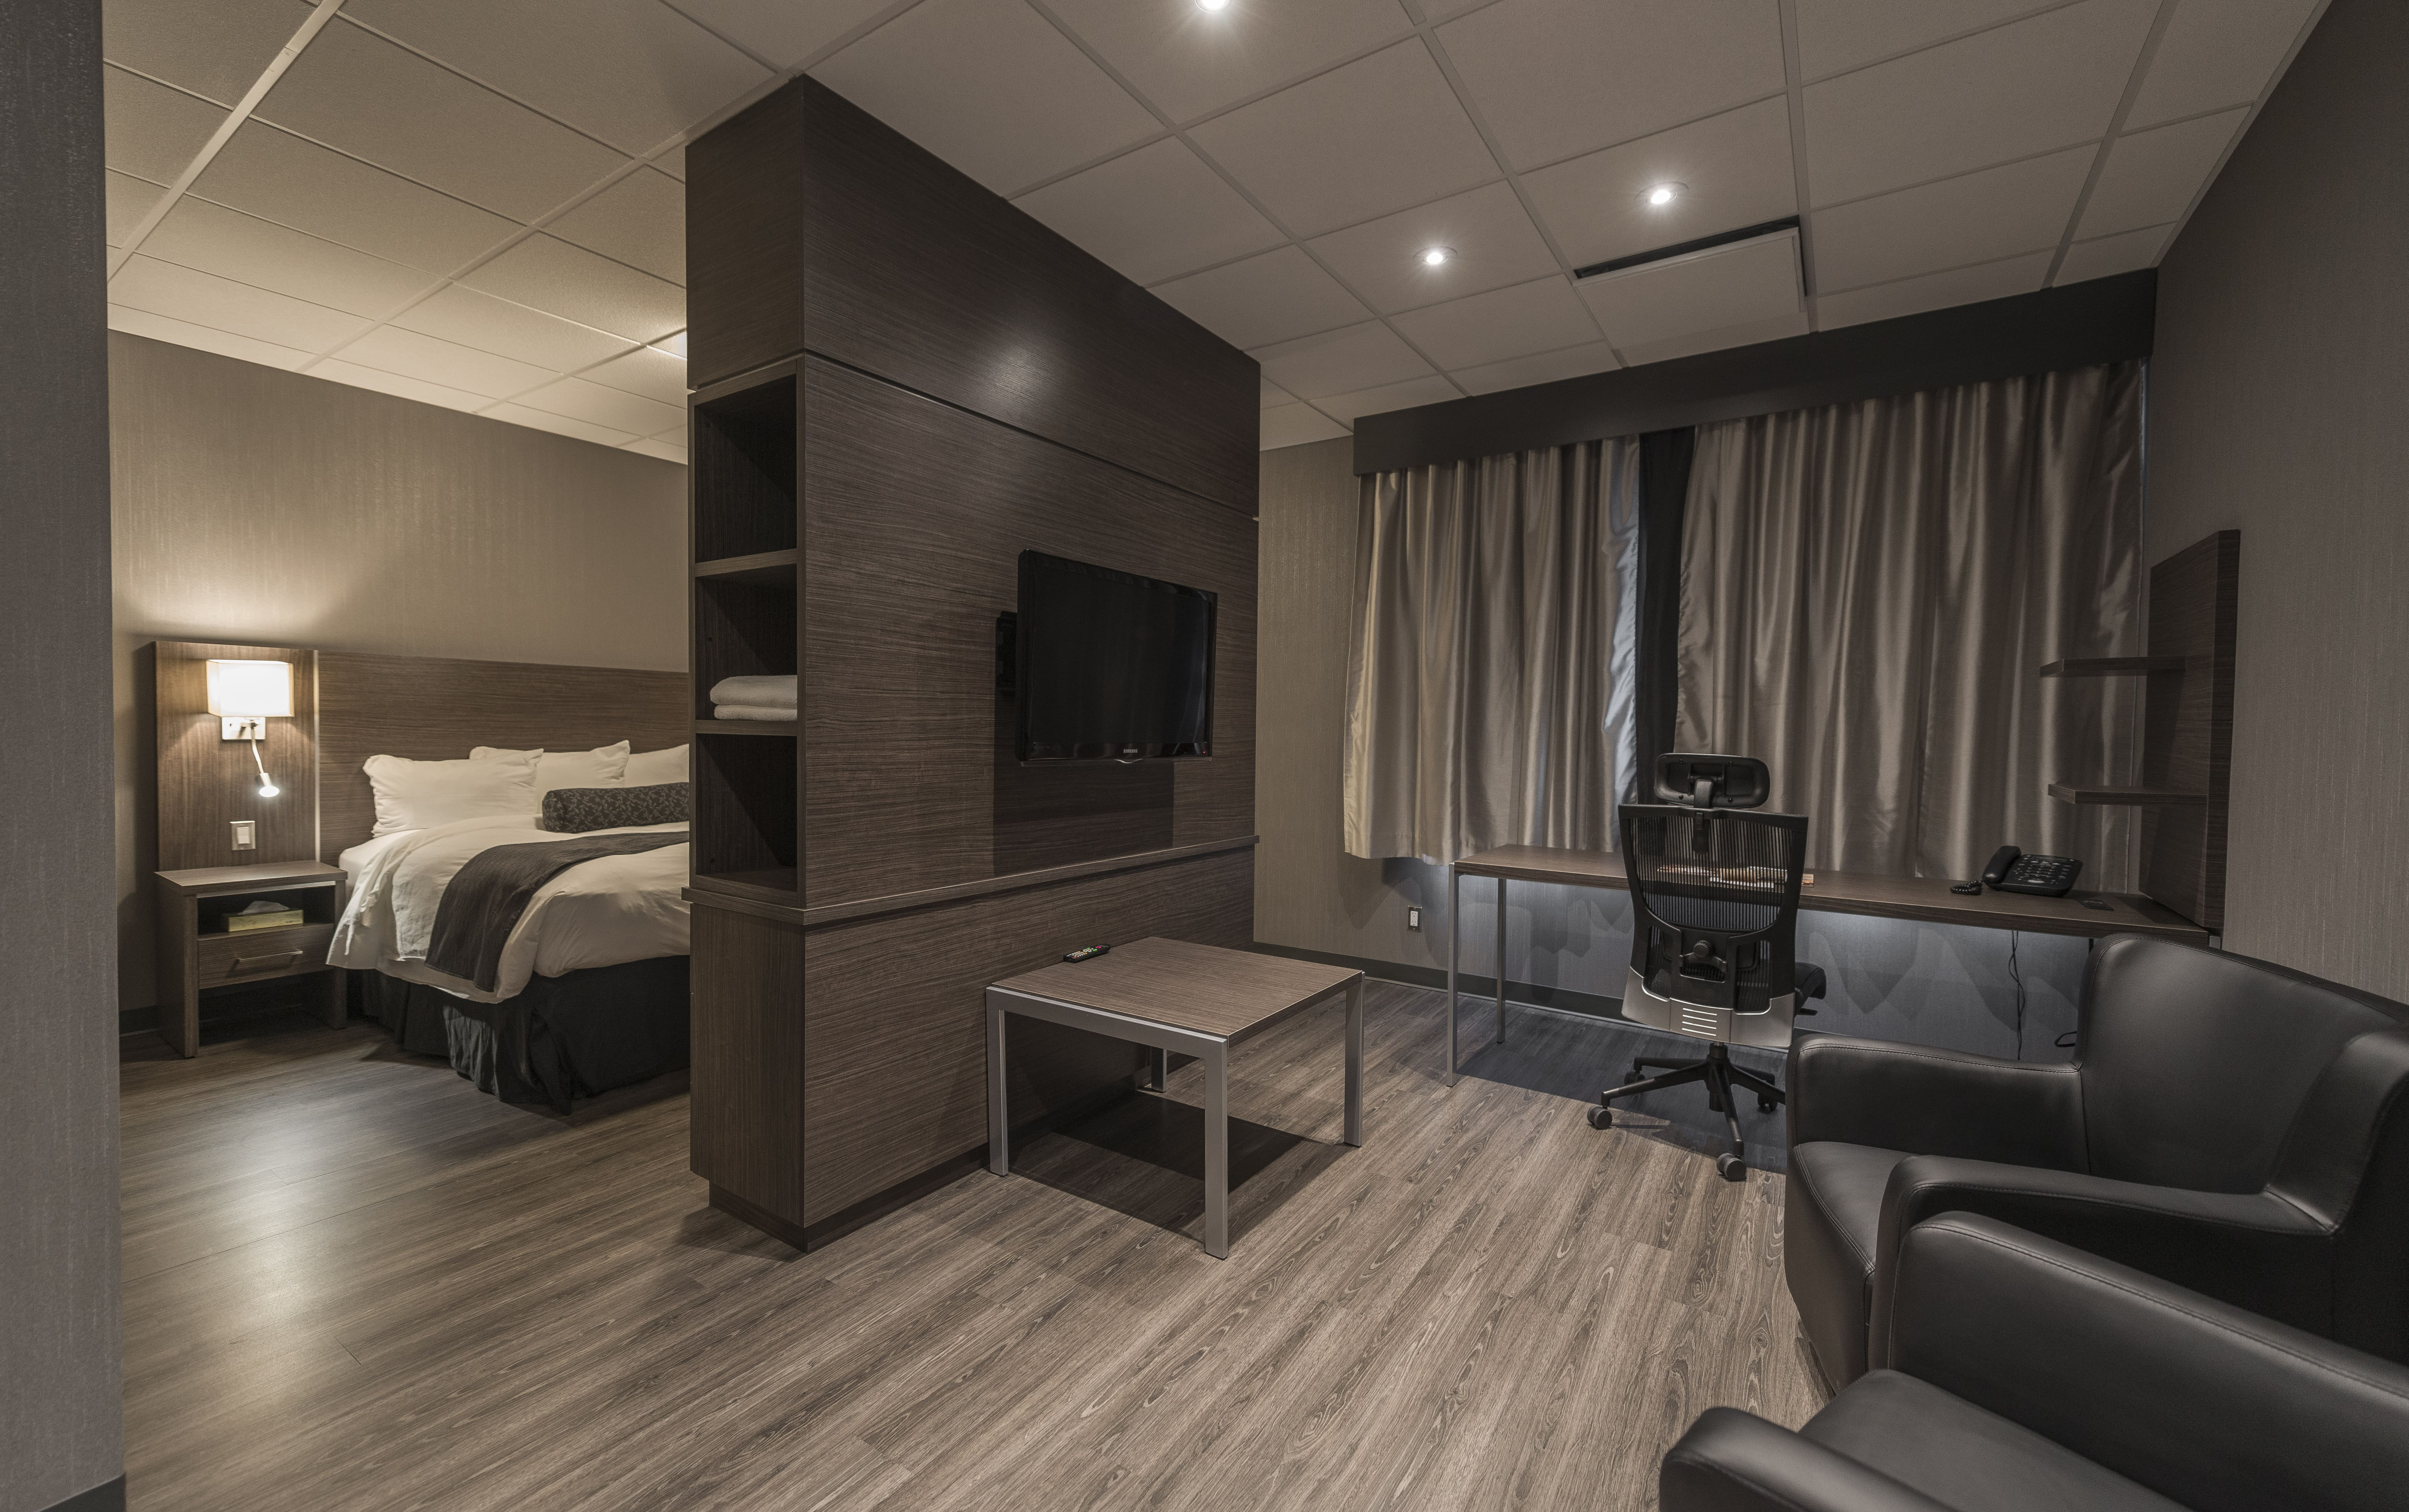 beau deco chambre d hotel. Black Bedroom Furniture Sets. Home Design Ideas